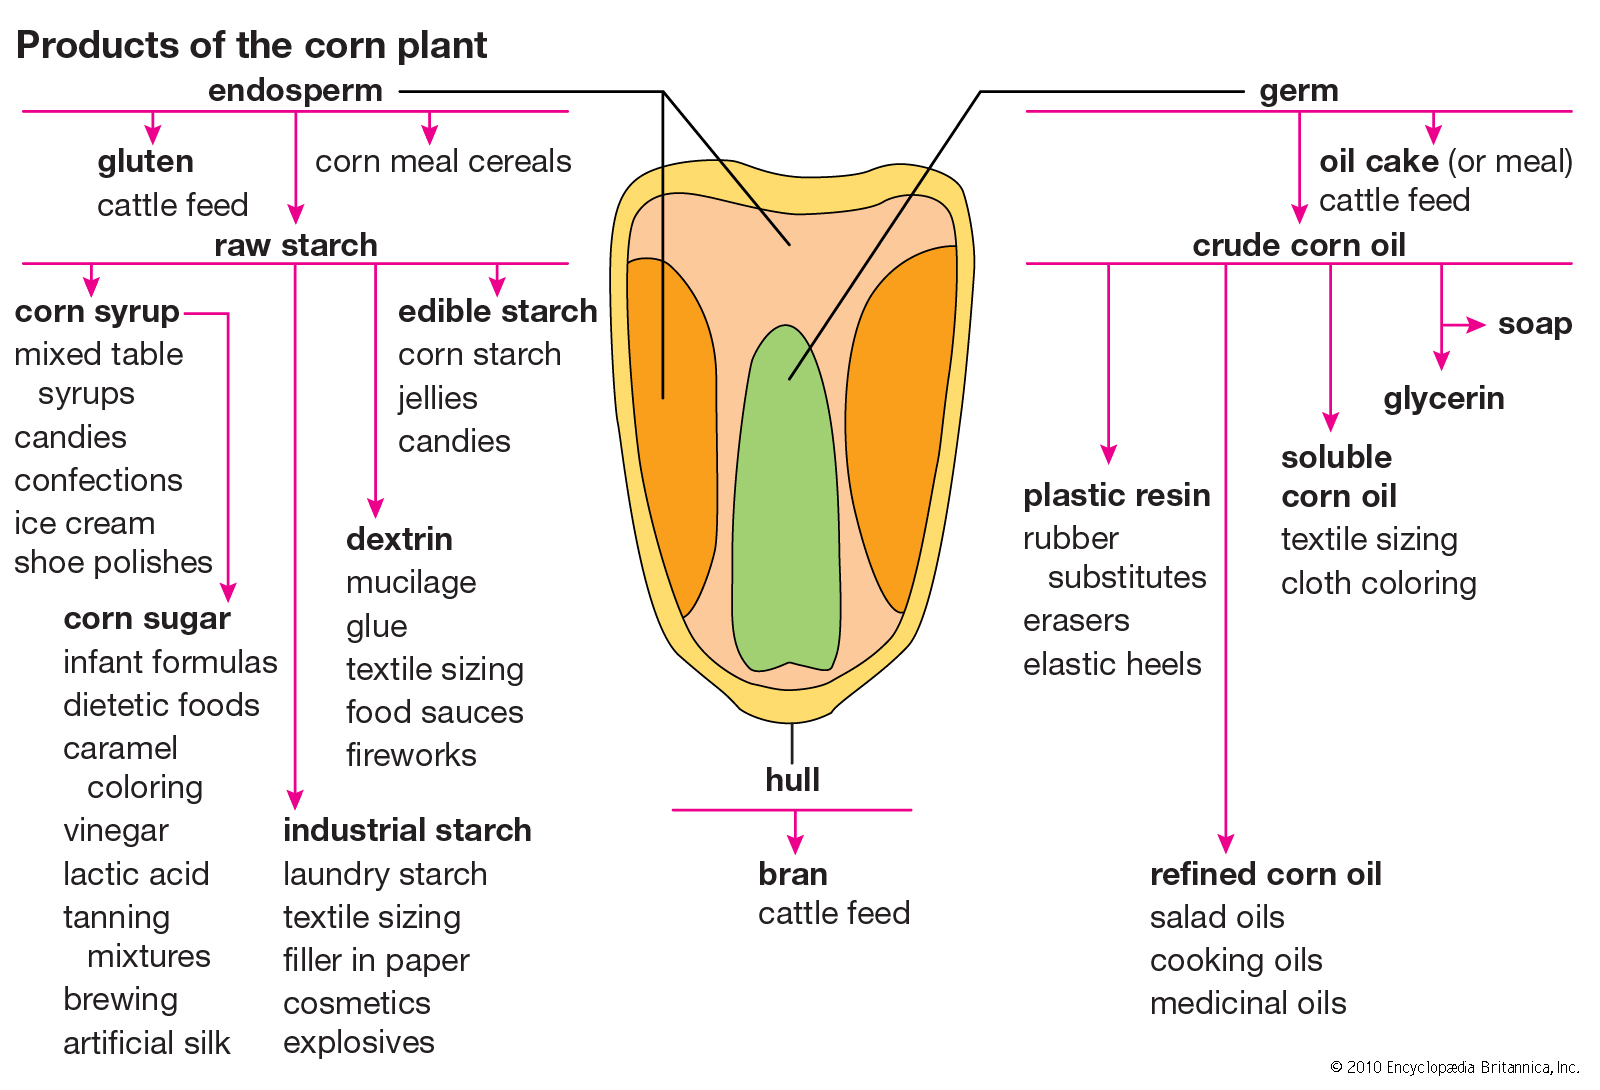 Look at all the things we can turn corn into! How many of these would you be able to recognize as corn? Would you be able to describe how it got from corn to the end product? Could you do it with a couple rocks, some water, and a campfire?